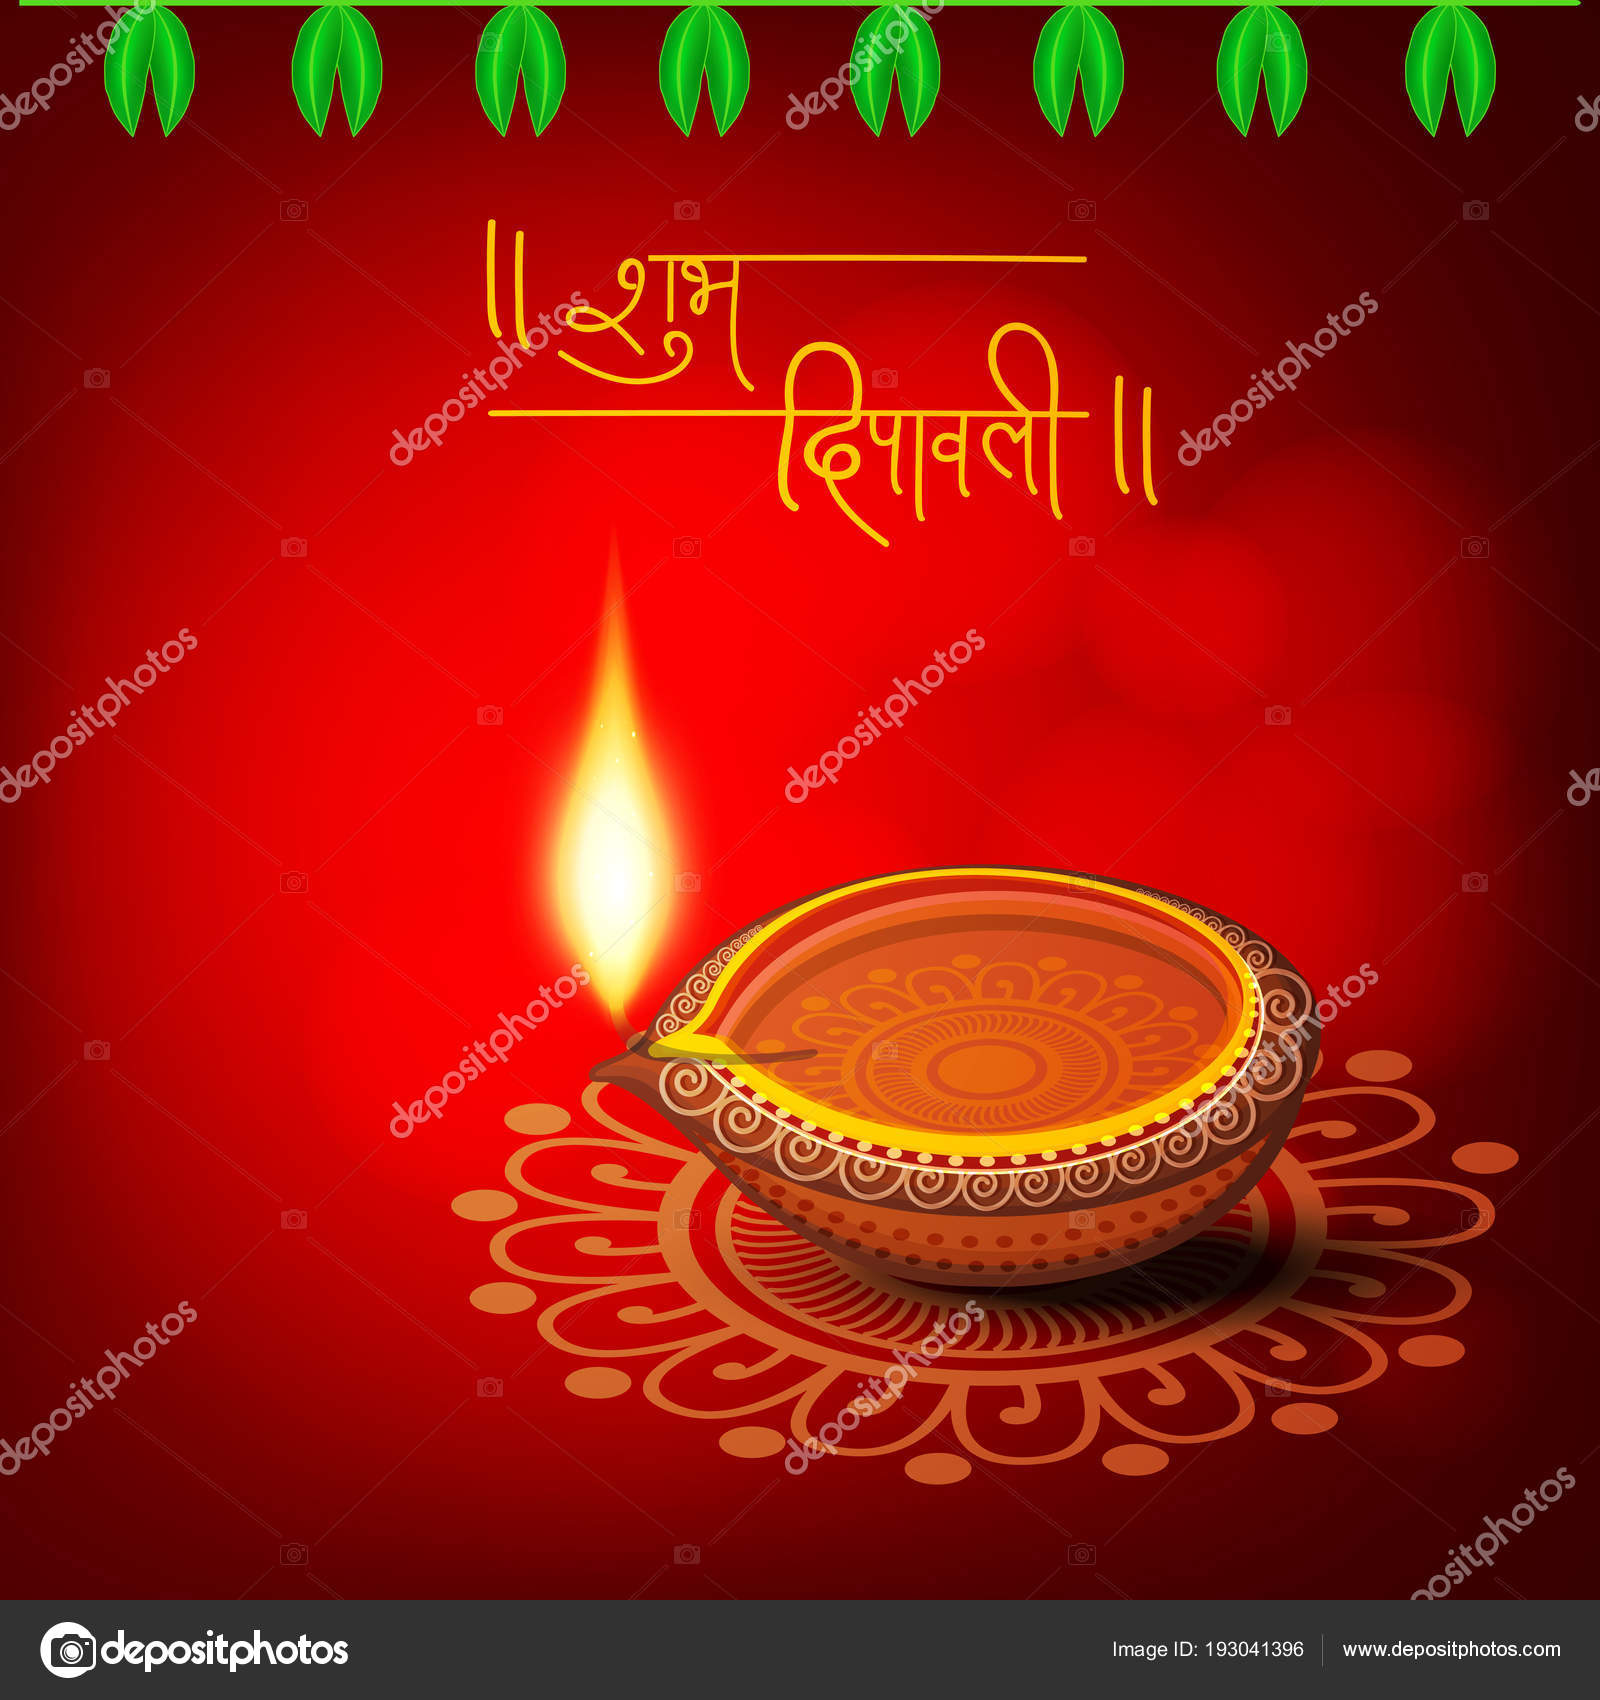 Happy Diwali Celebration Hindi Text Shubh Diwali Greeting Card